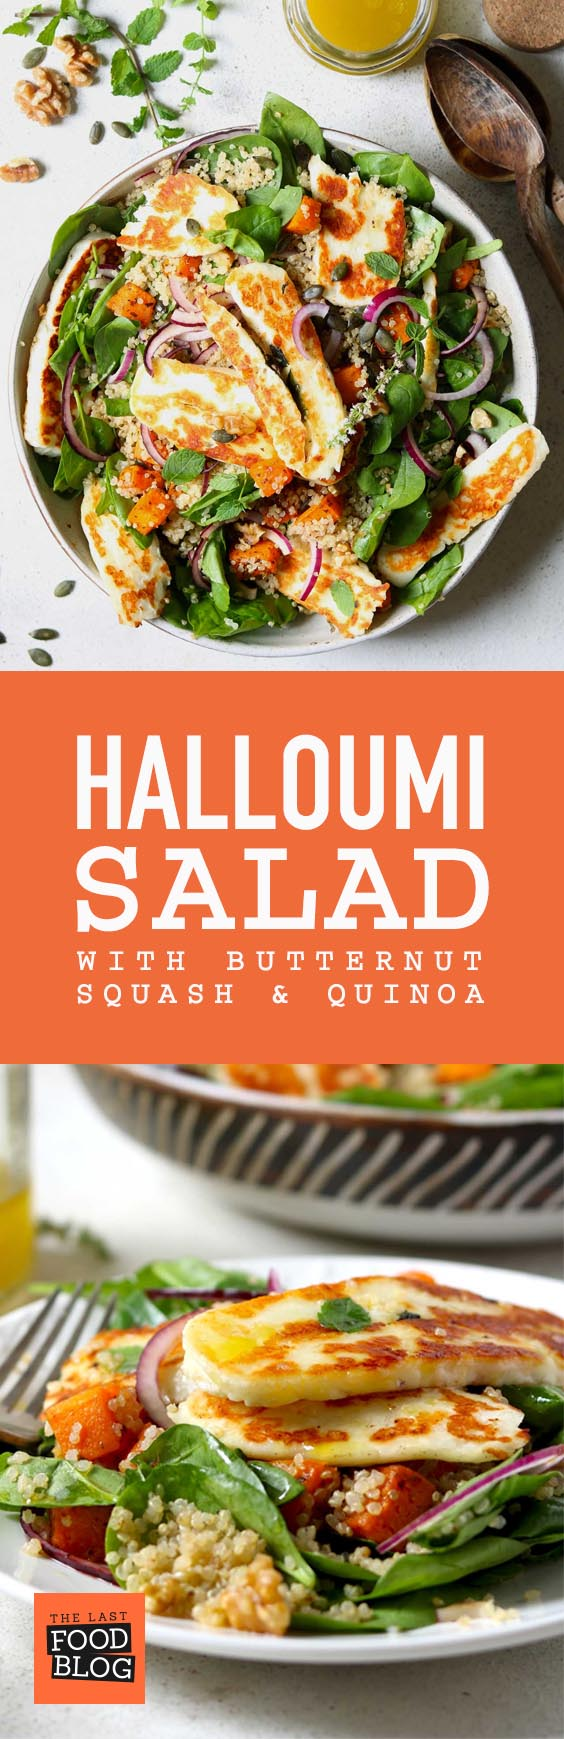 Halloumi Salad with Butternut Squash & Quinoa